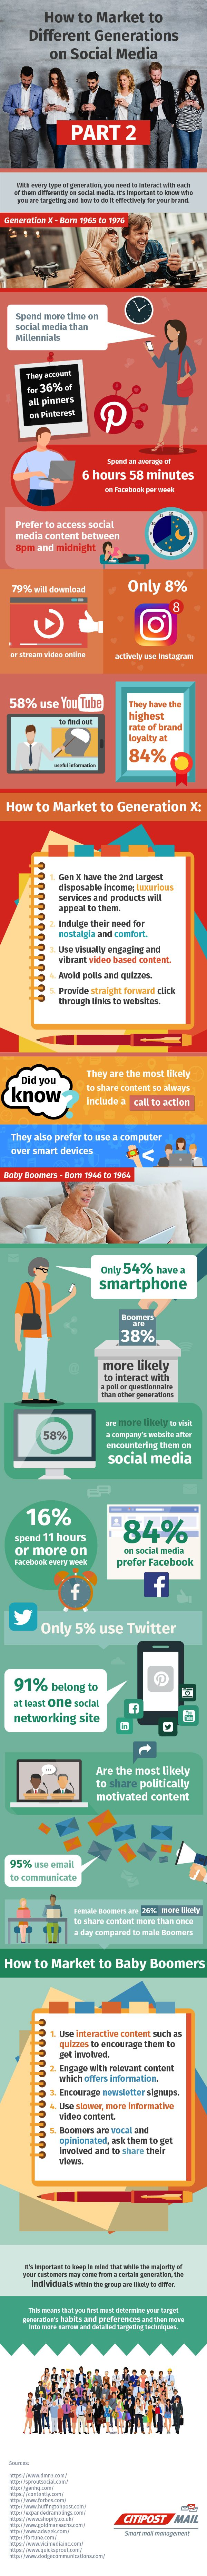 How to Market to Generation X and Baby Boomers on Social Media (infographic)